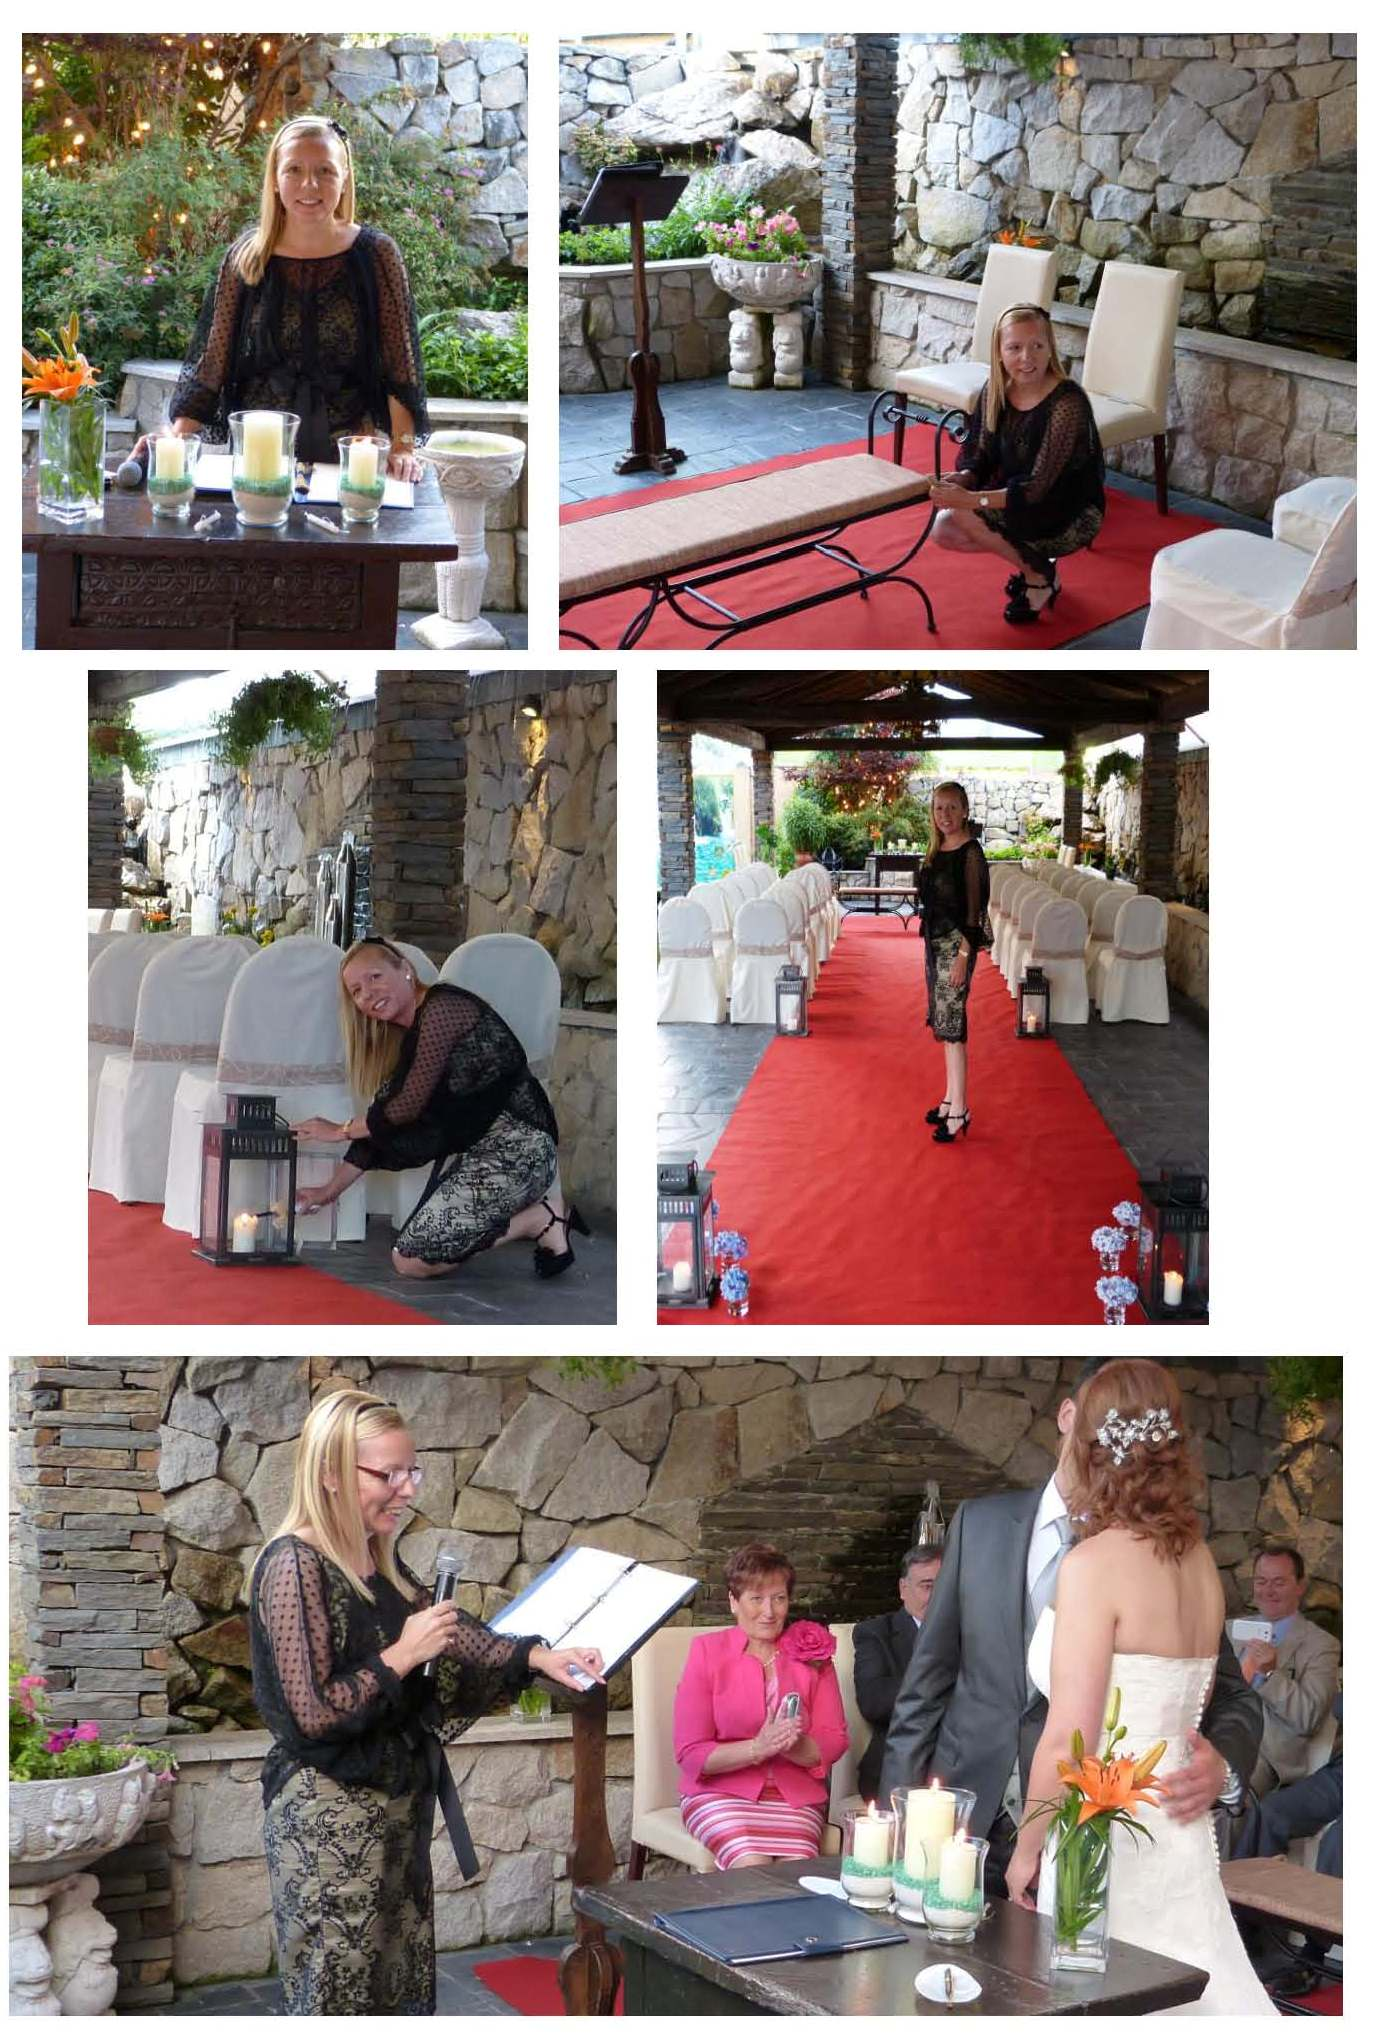 Personaliza Tu Ceremonia Civil Marilé Eventos Wedding Planner